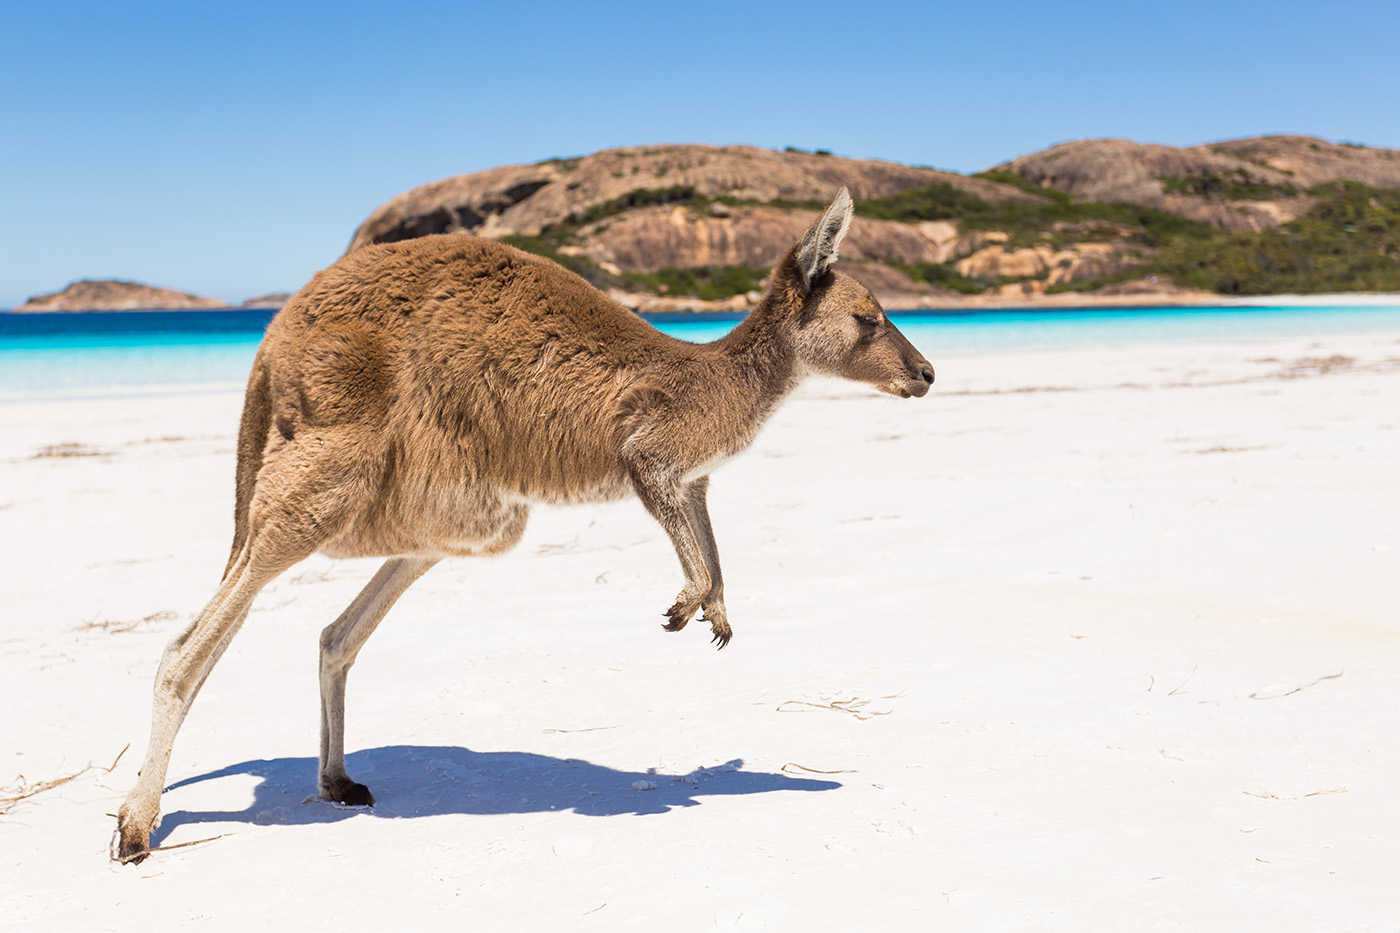 Kangaroo on the beach at the beach running 50876